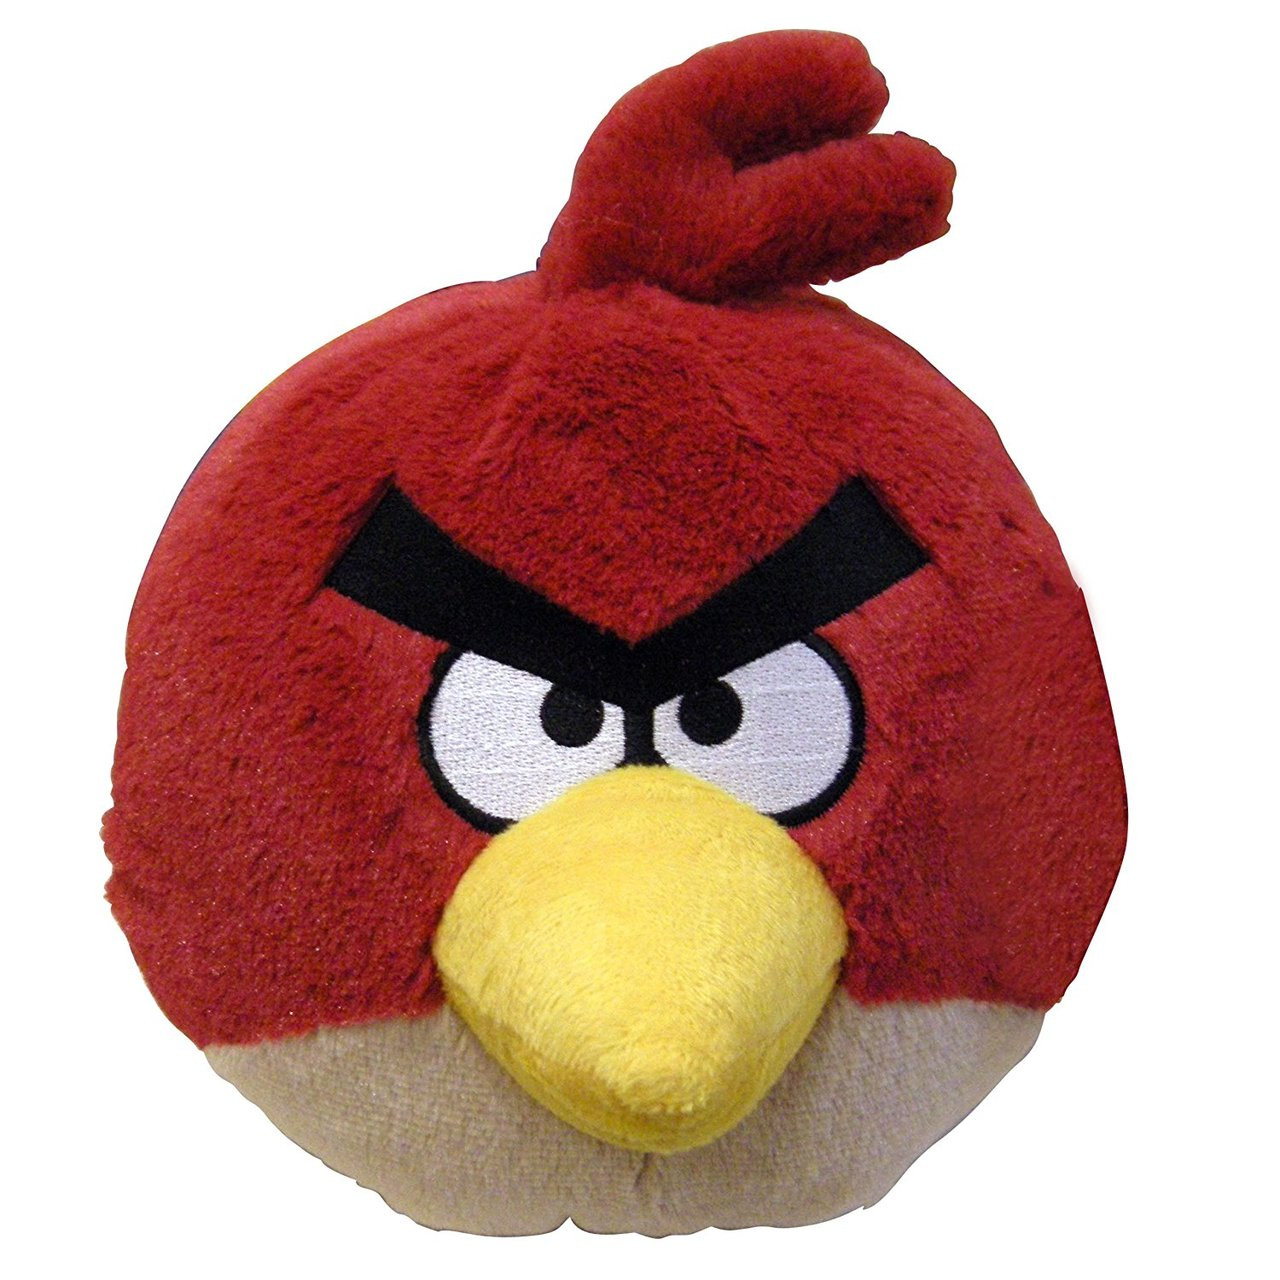 Angry Birds Medium 8 Inch Plush Toy With Sound - Red Bird